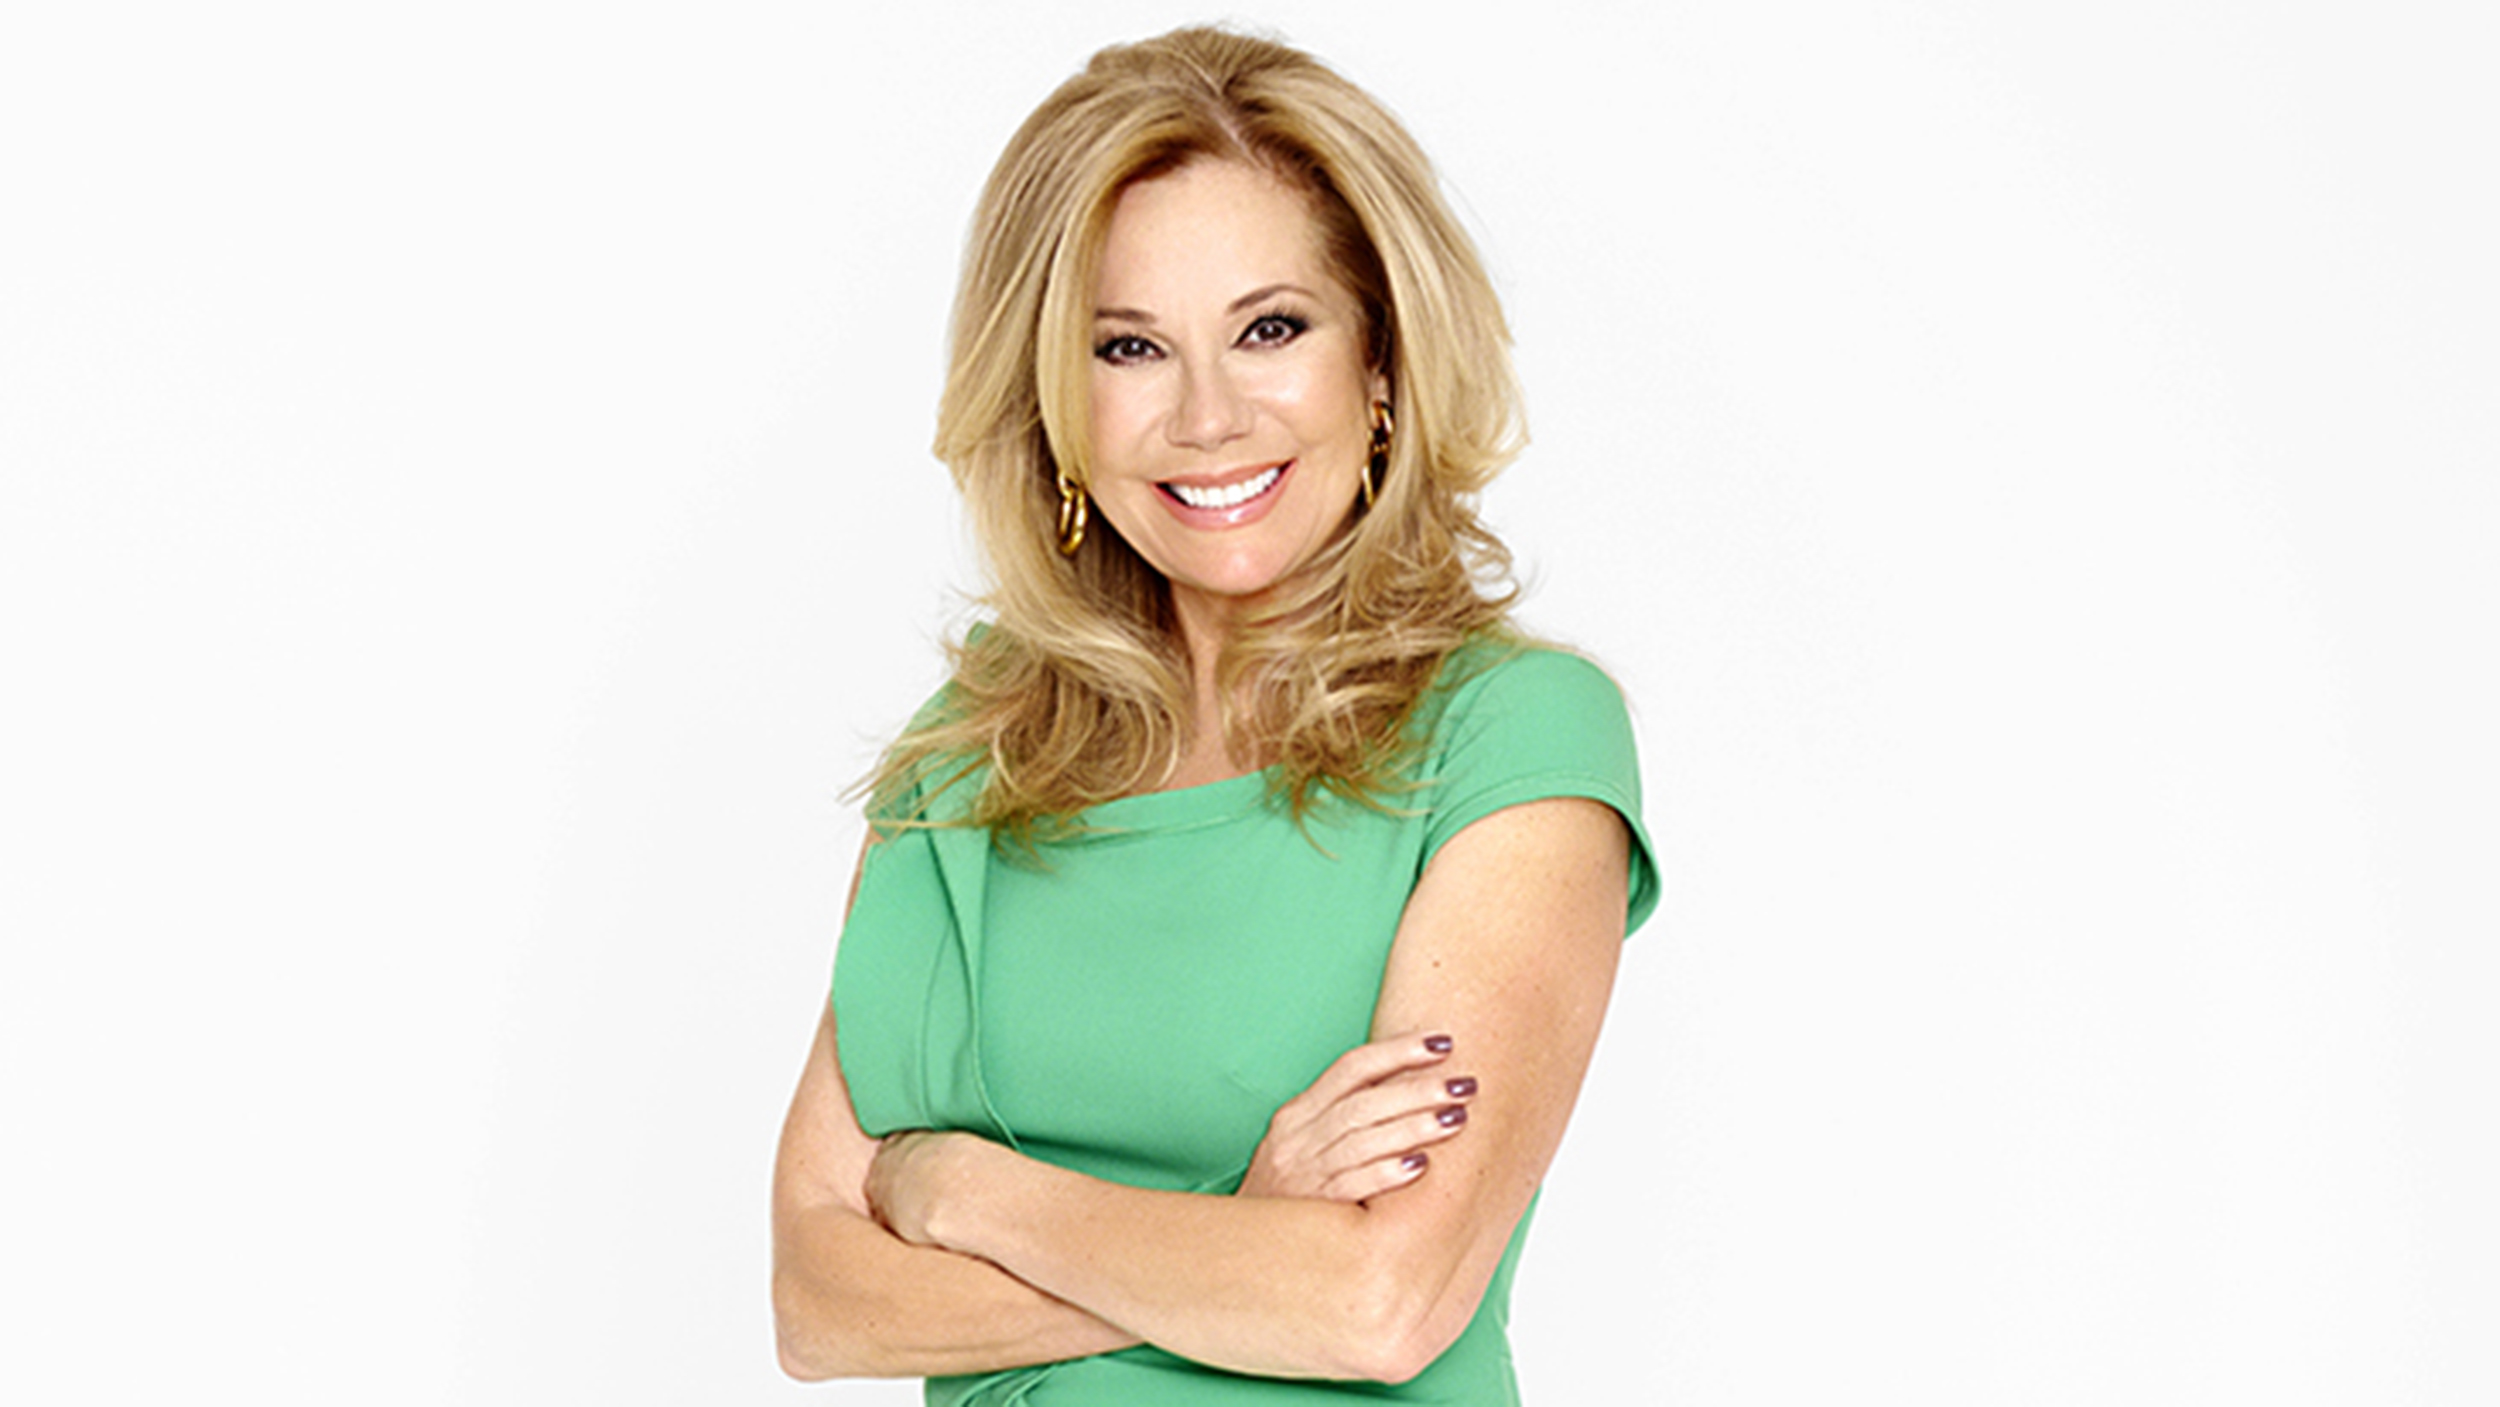 Kathie Lee Gifford Hairstyle Kathie Lee Gifford Co-host of